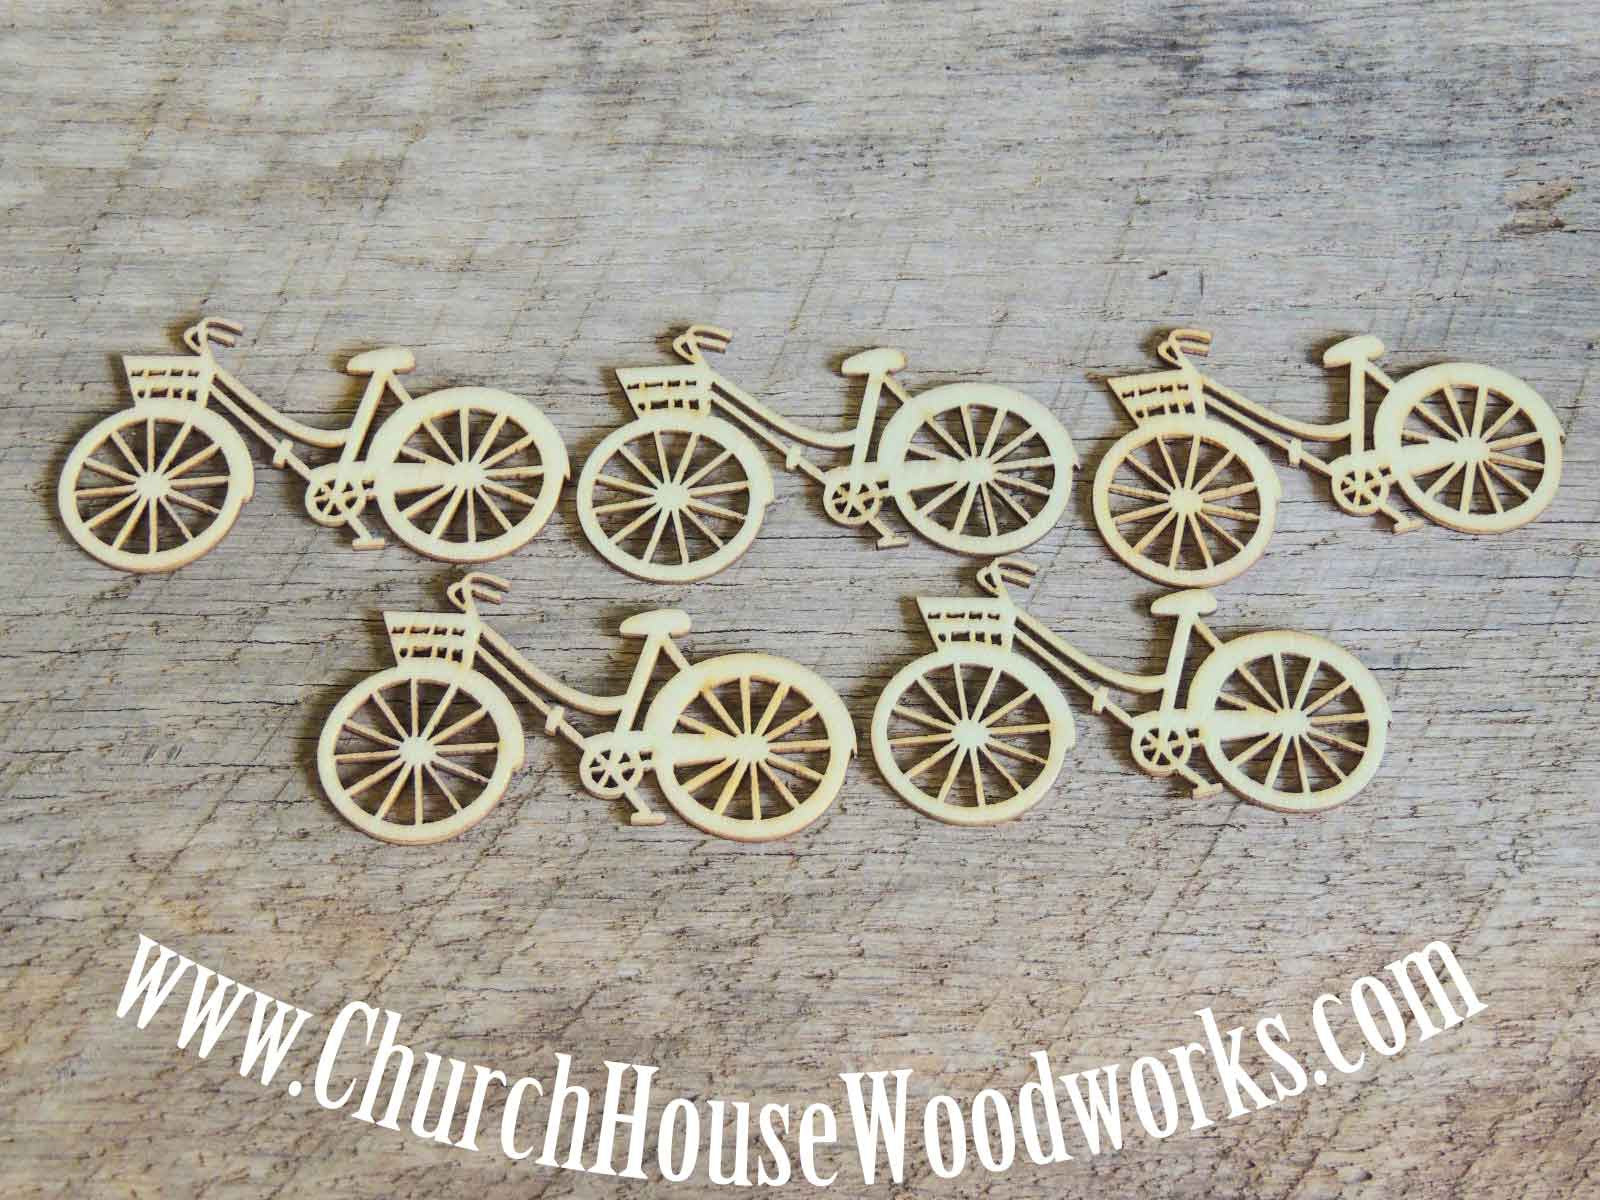 Wooden Bicycle pack of 5 Die Cut- Use for sewing, crafts, scrap booking, embellishments, gifts, Confetti Table Scatter Decorations